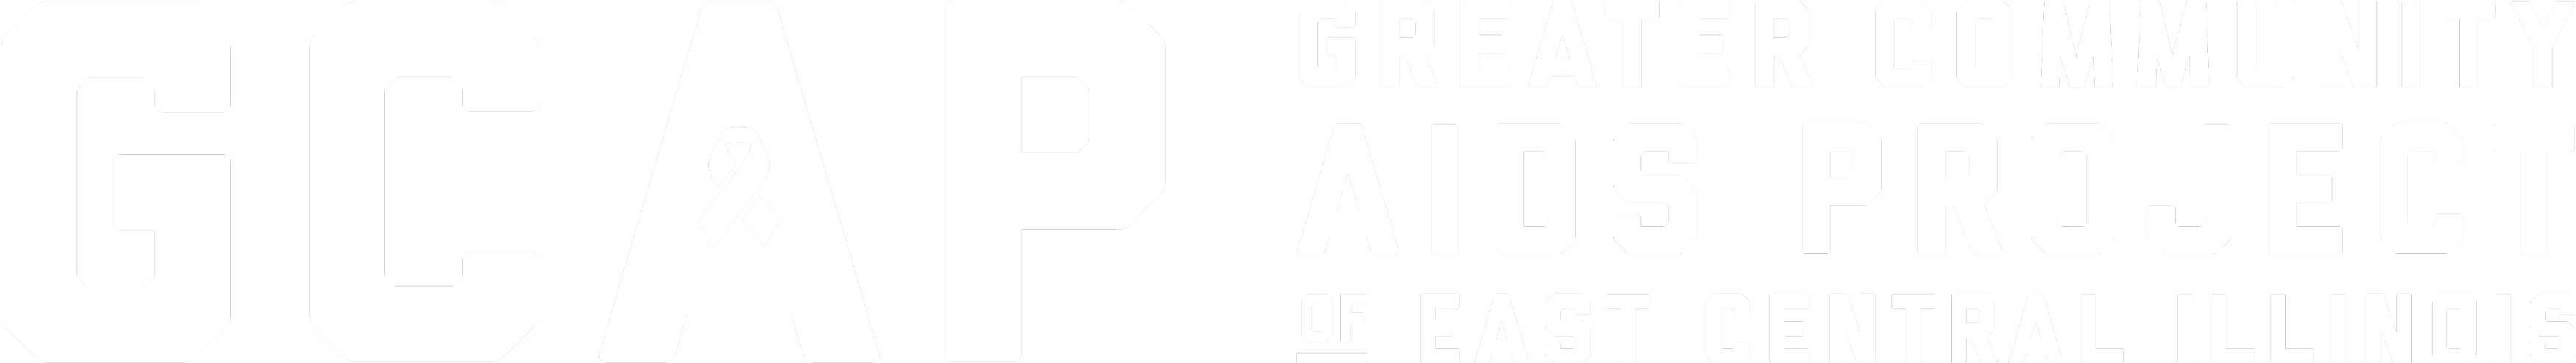 Greater Community Aids Project - Branding